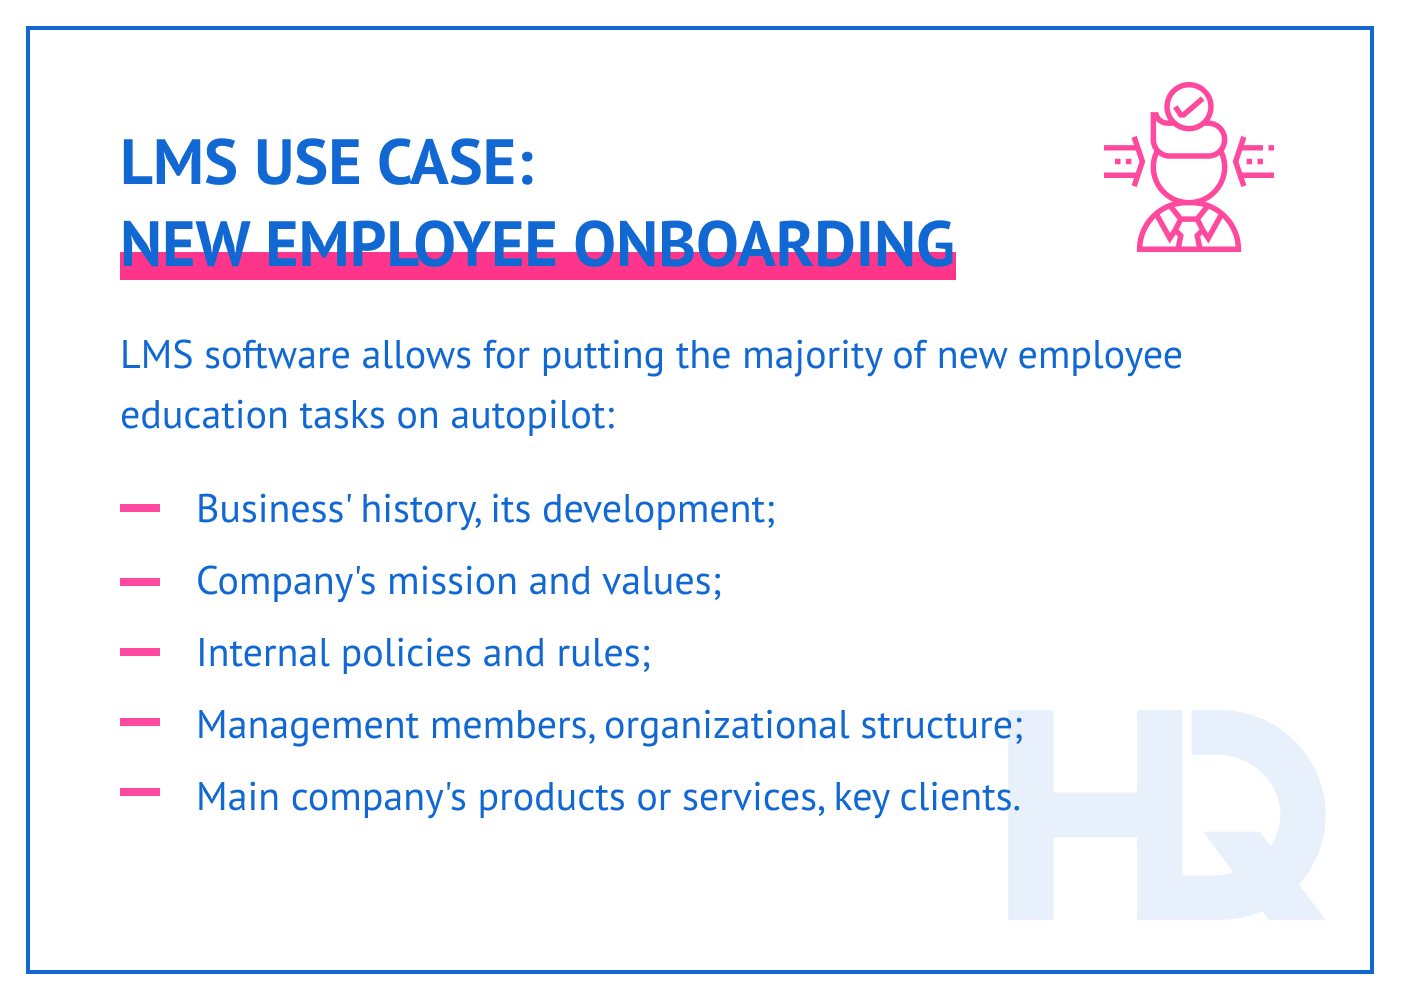 LMS use case: new employee onboarding.